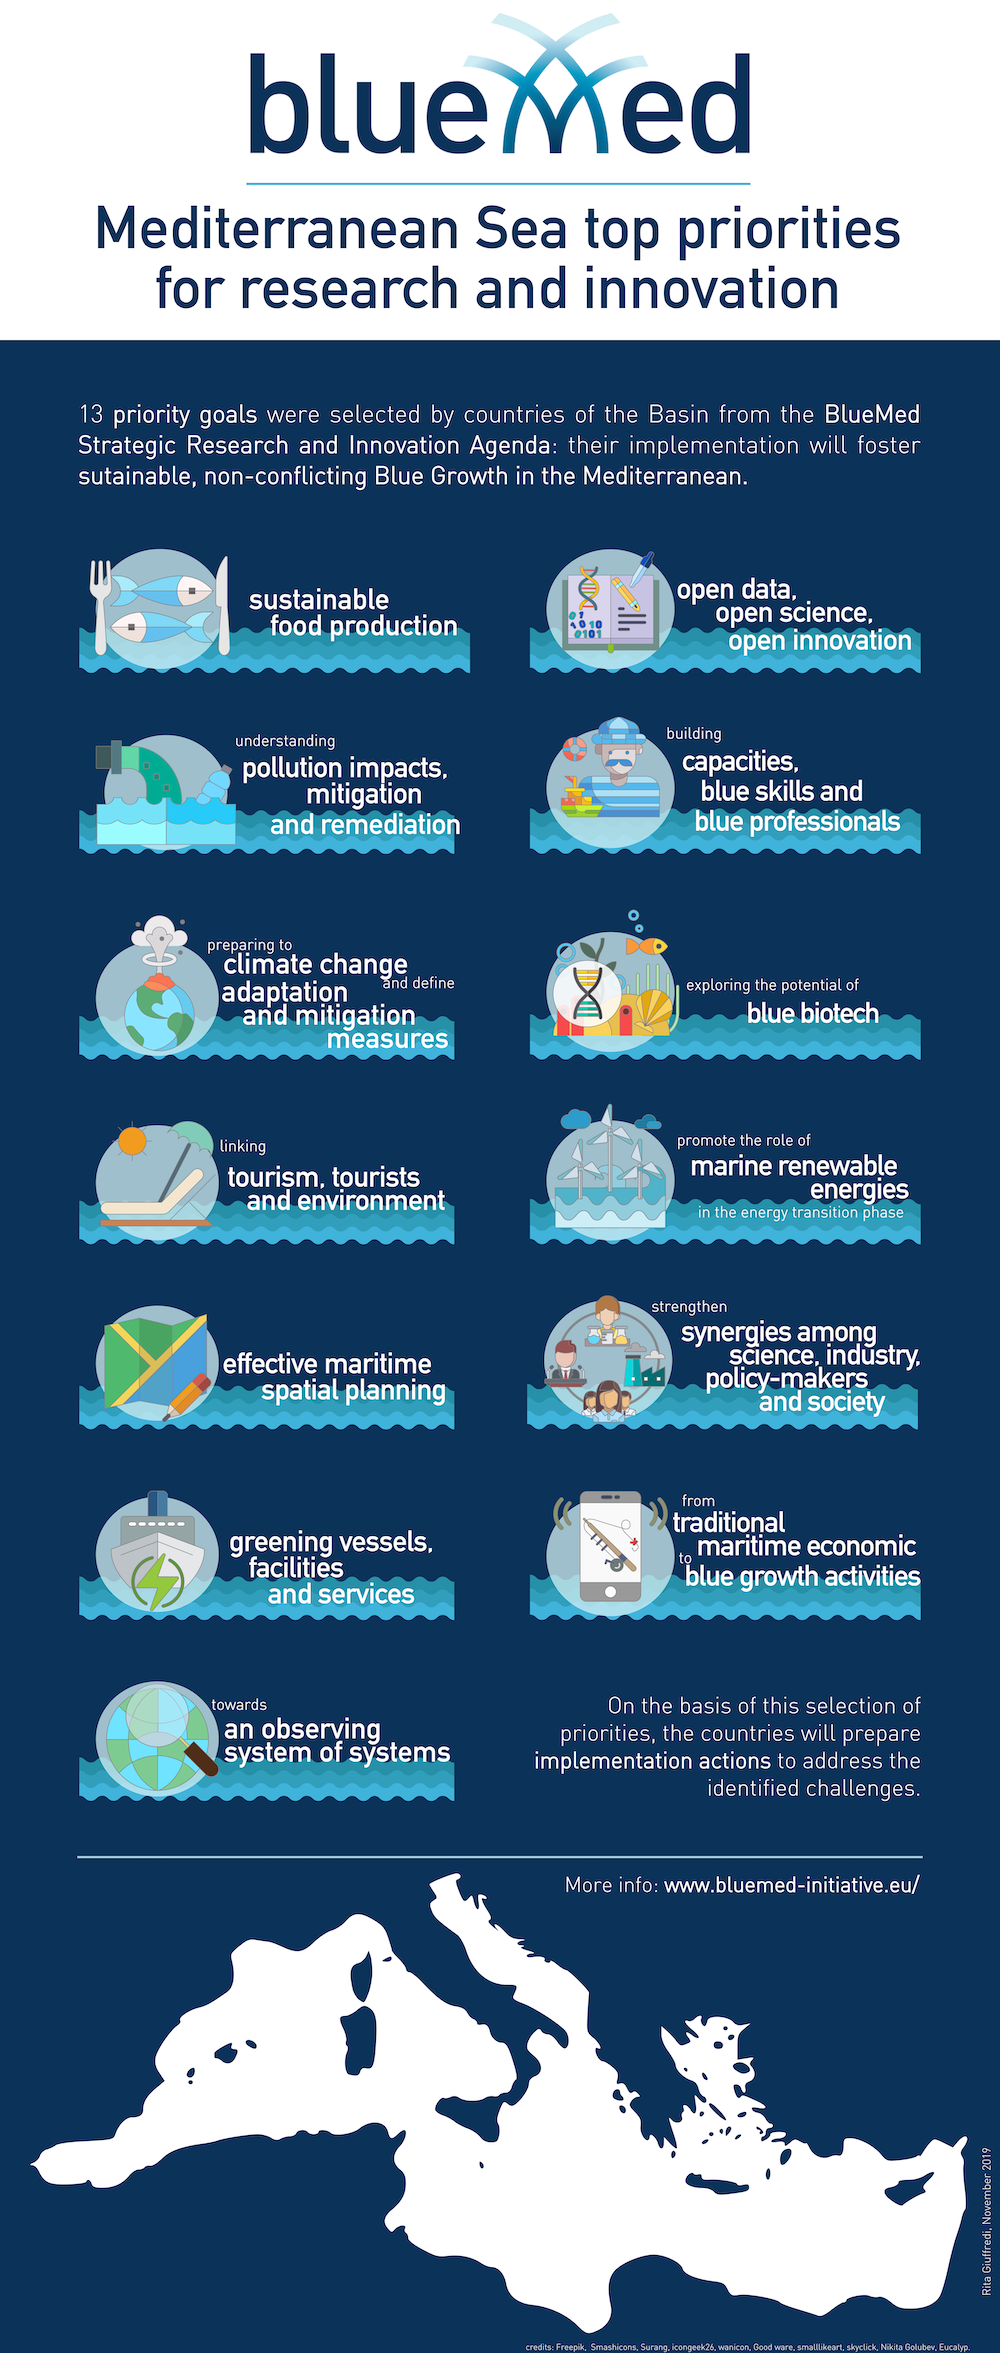 An infographic of the priorities for the Mediterranean identified within the BlueMed initiative.